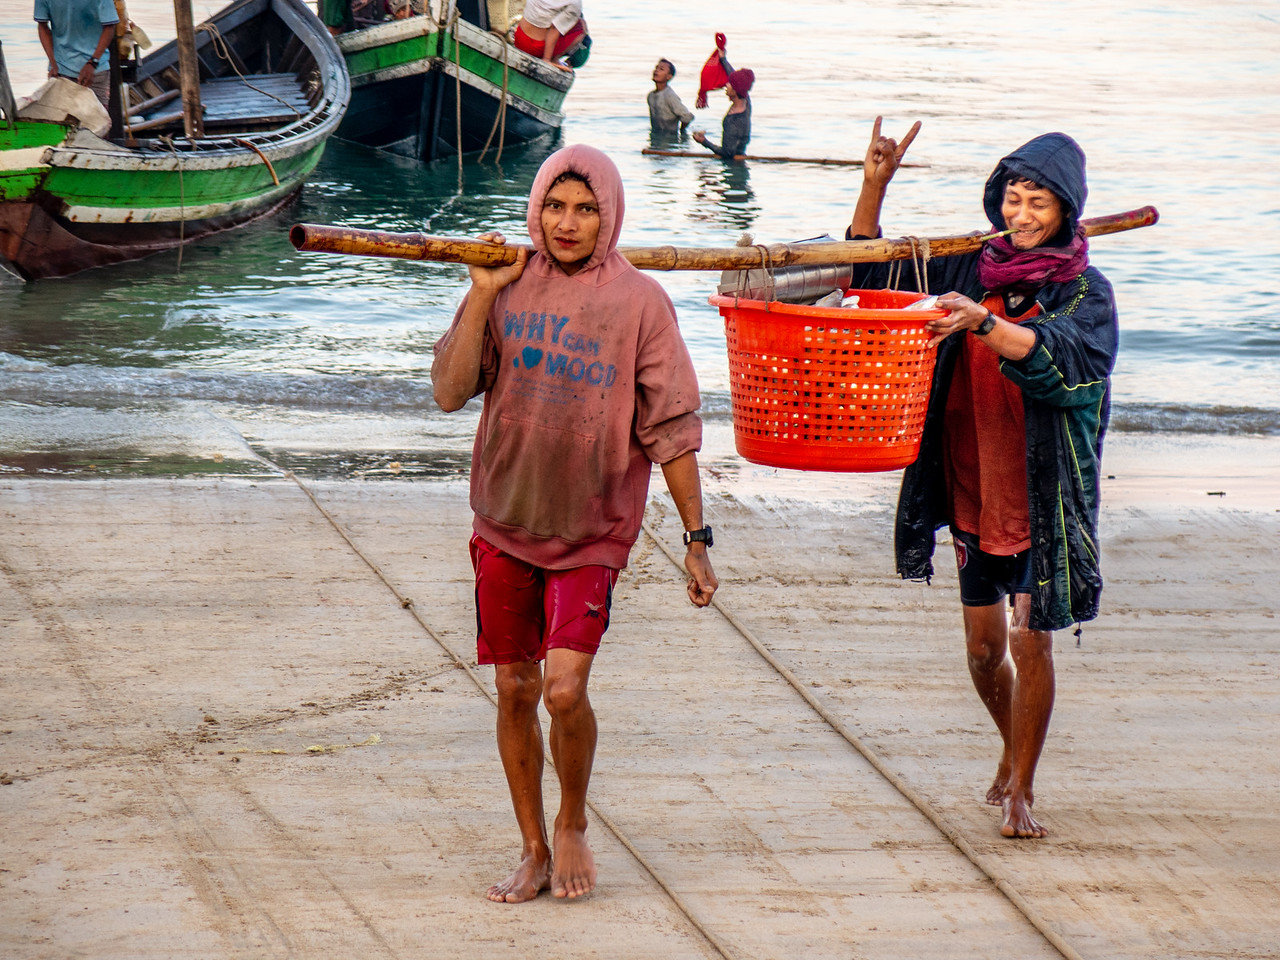 Myanmar Fishing Requires Teamwork and Perhaps a Bit of Humor